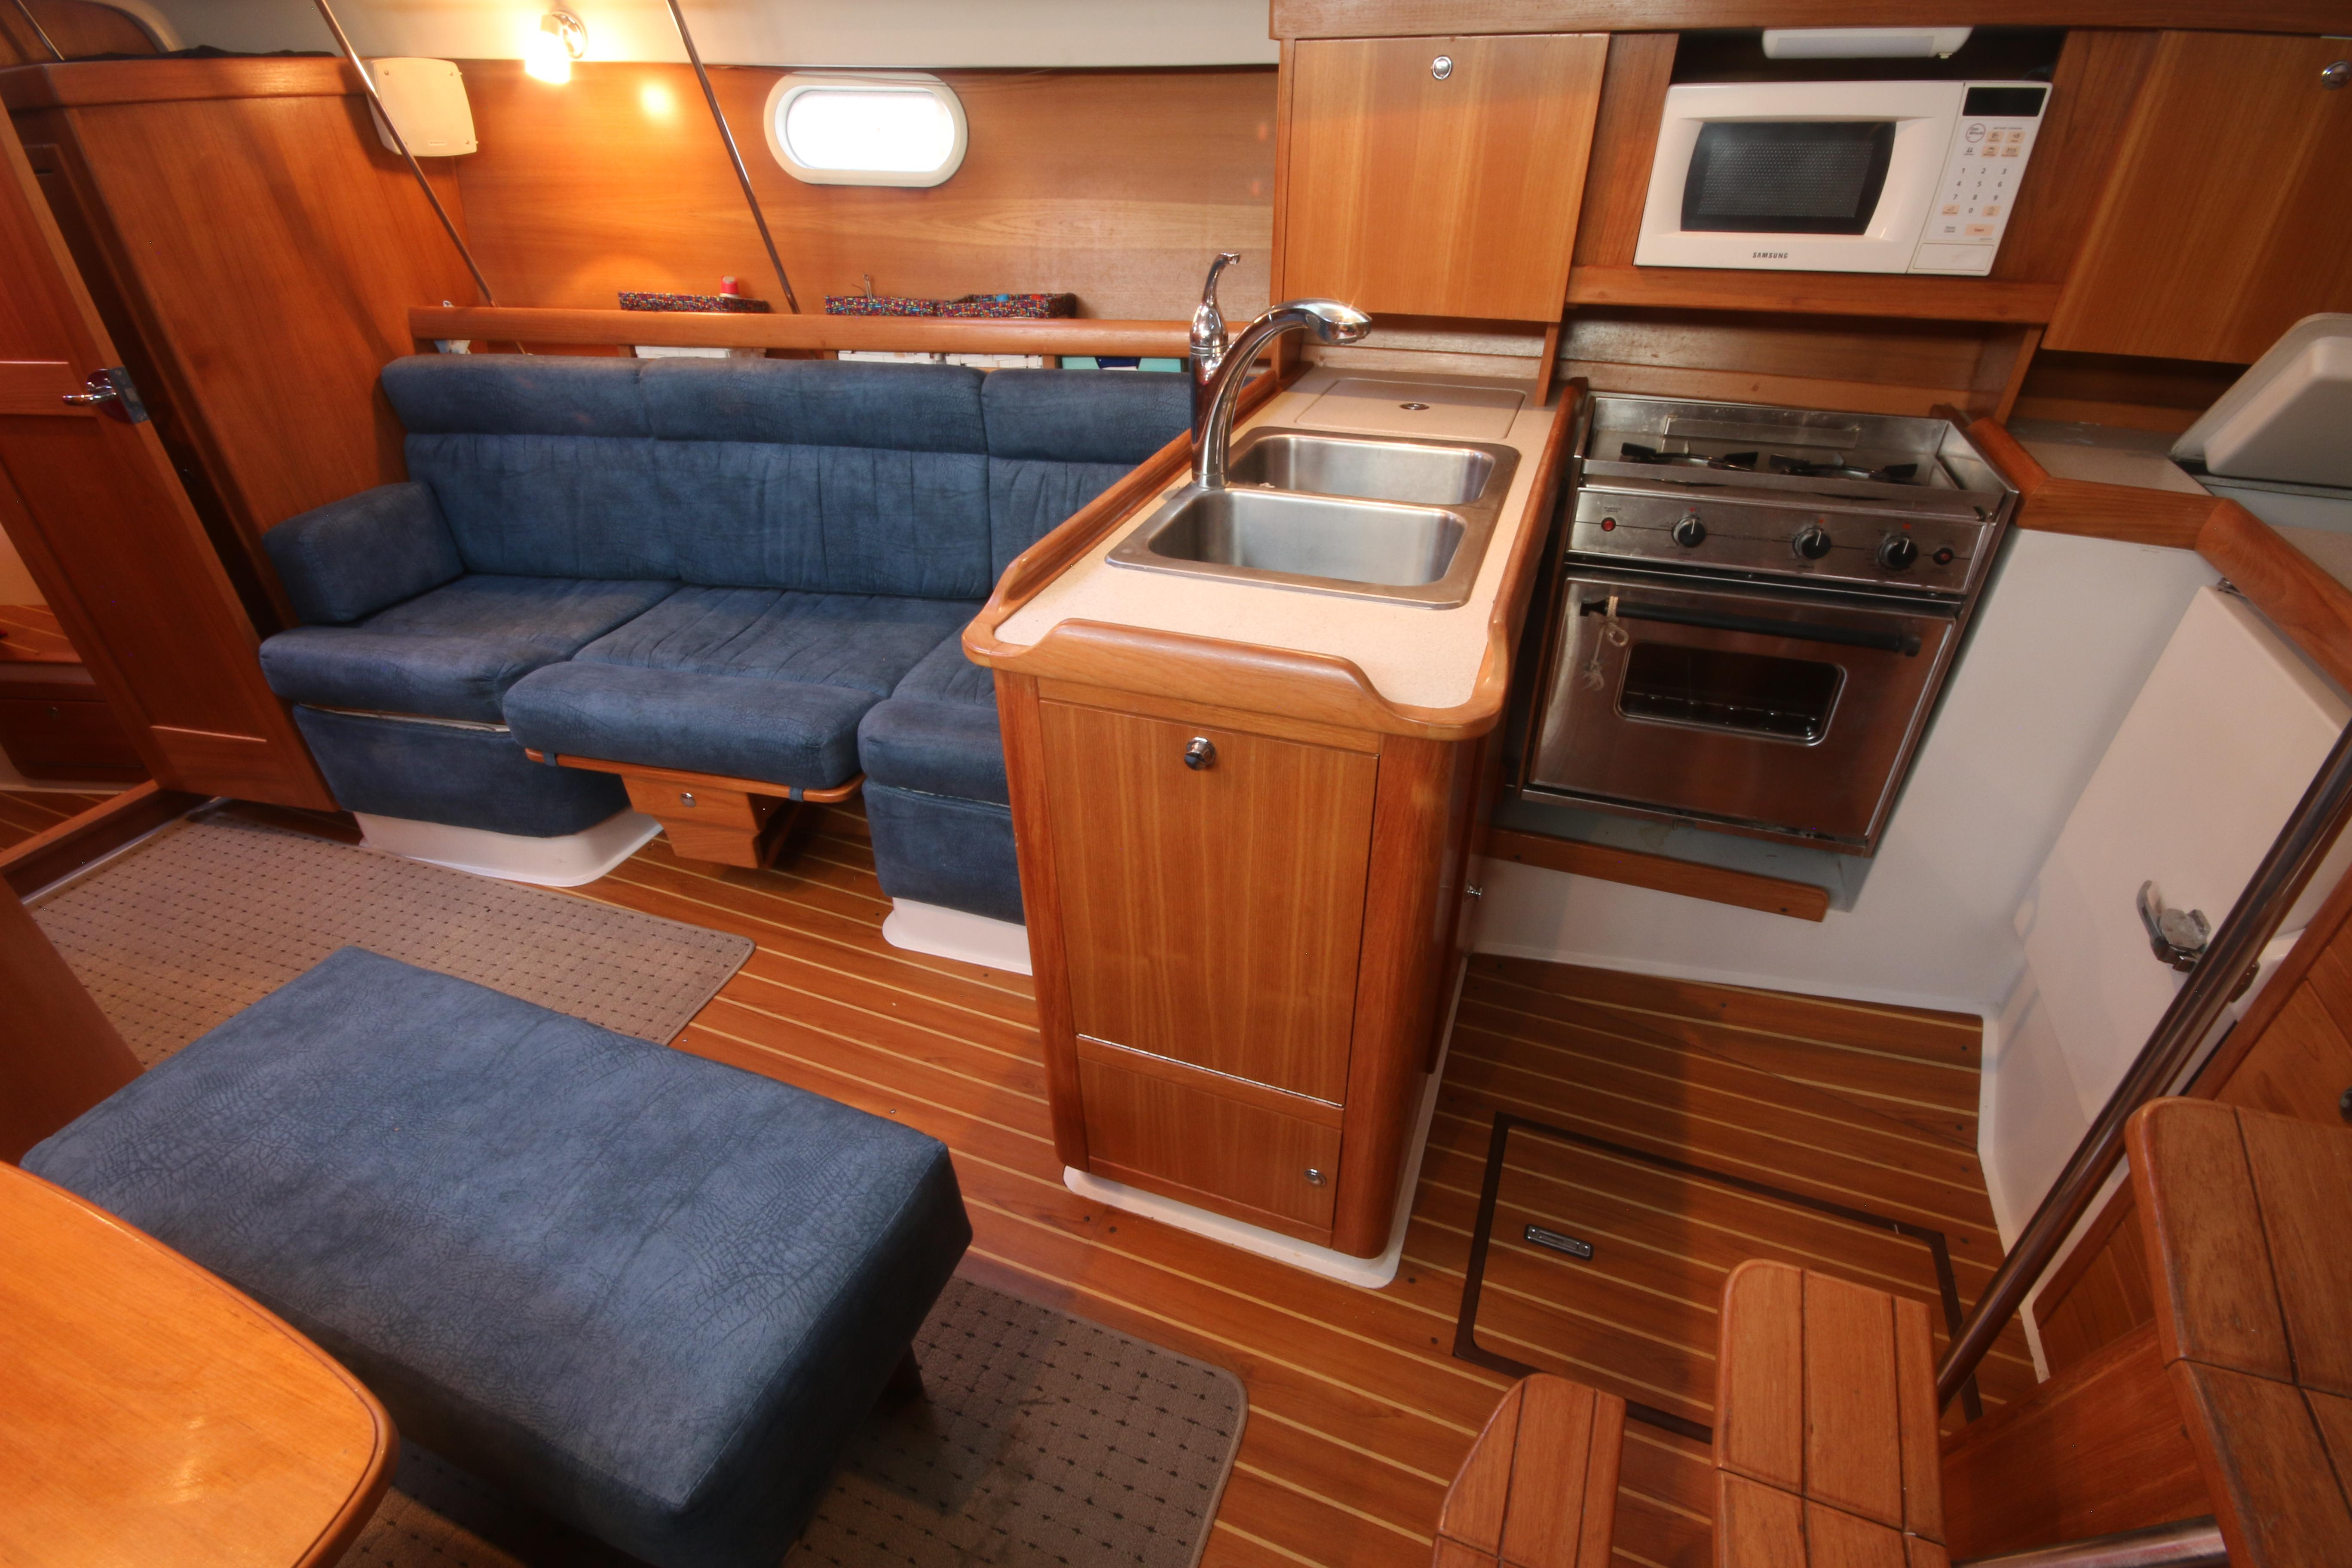 The Settee To Port Can Be Converted Into A Double Berth, And There Is Also A Larger Table That Mounts In Place Of The Drinks Table.